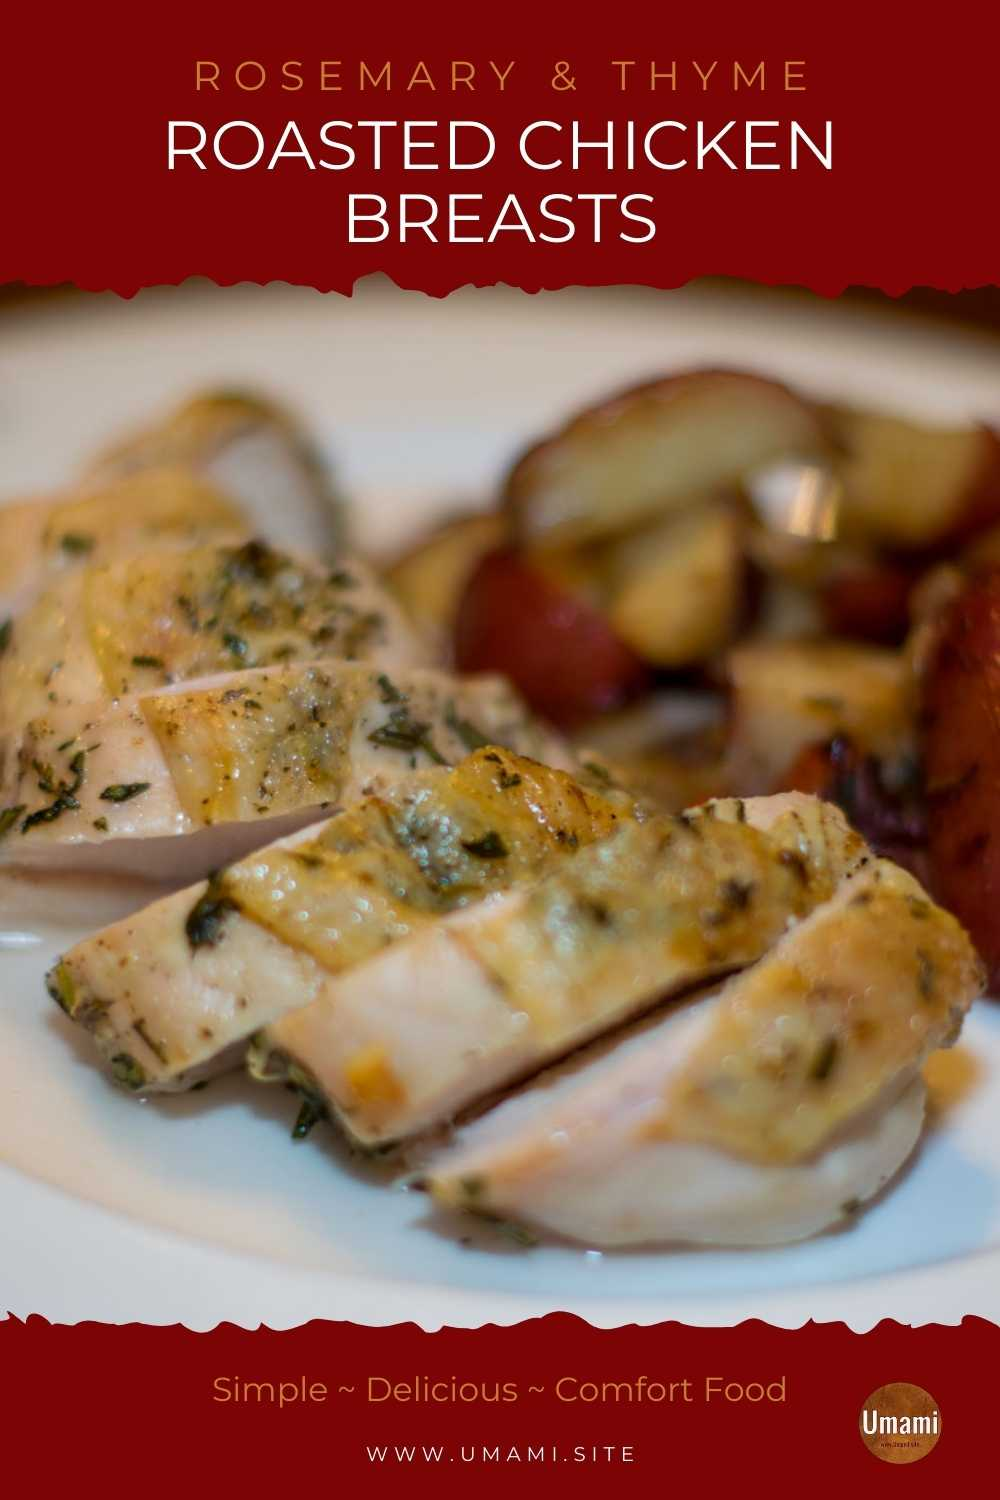 Roasted Chicken Breasts